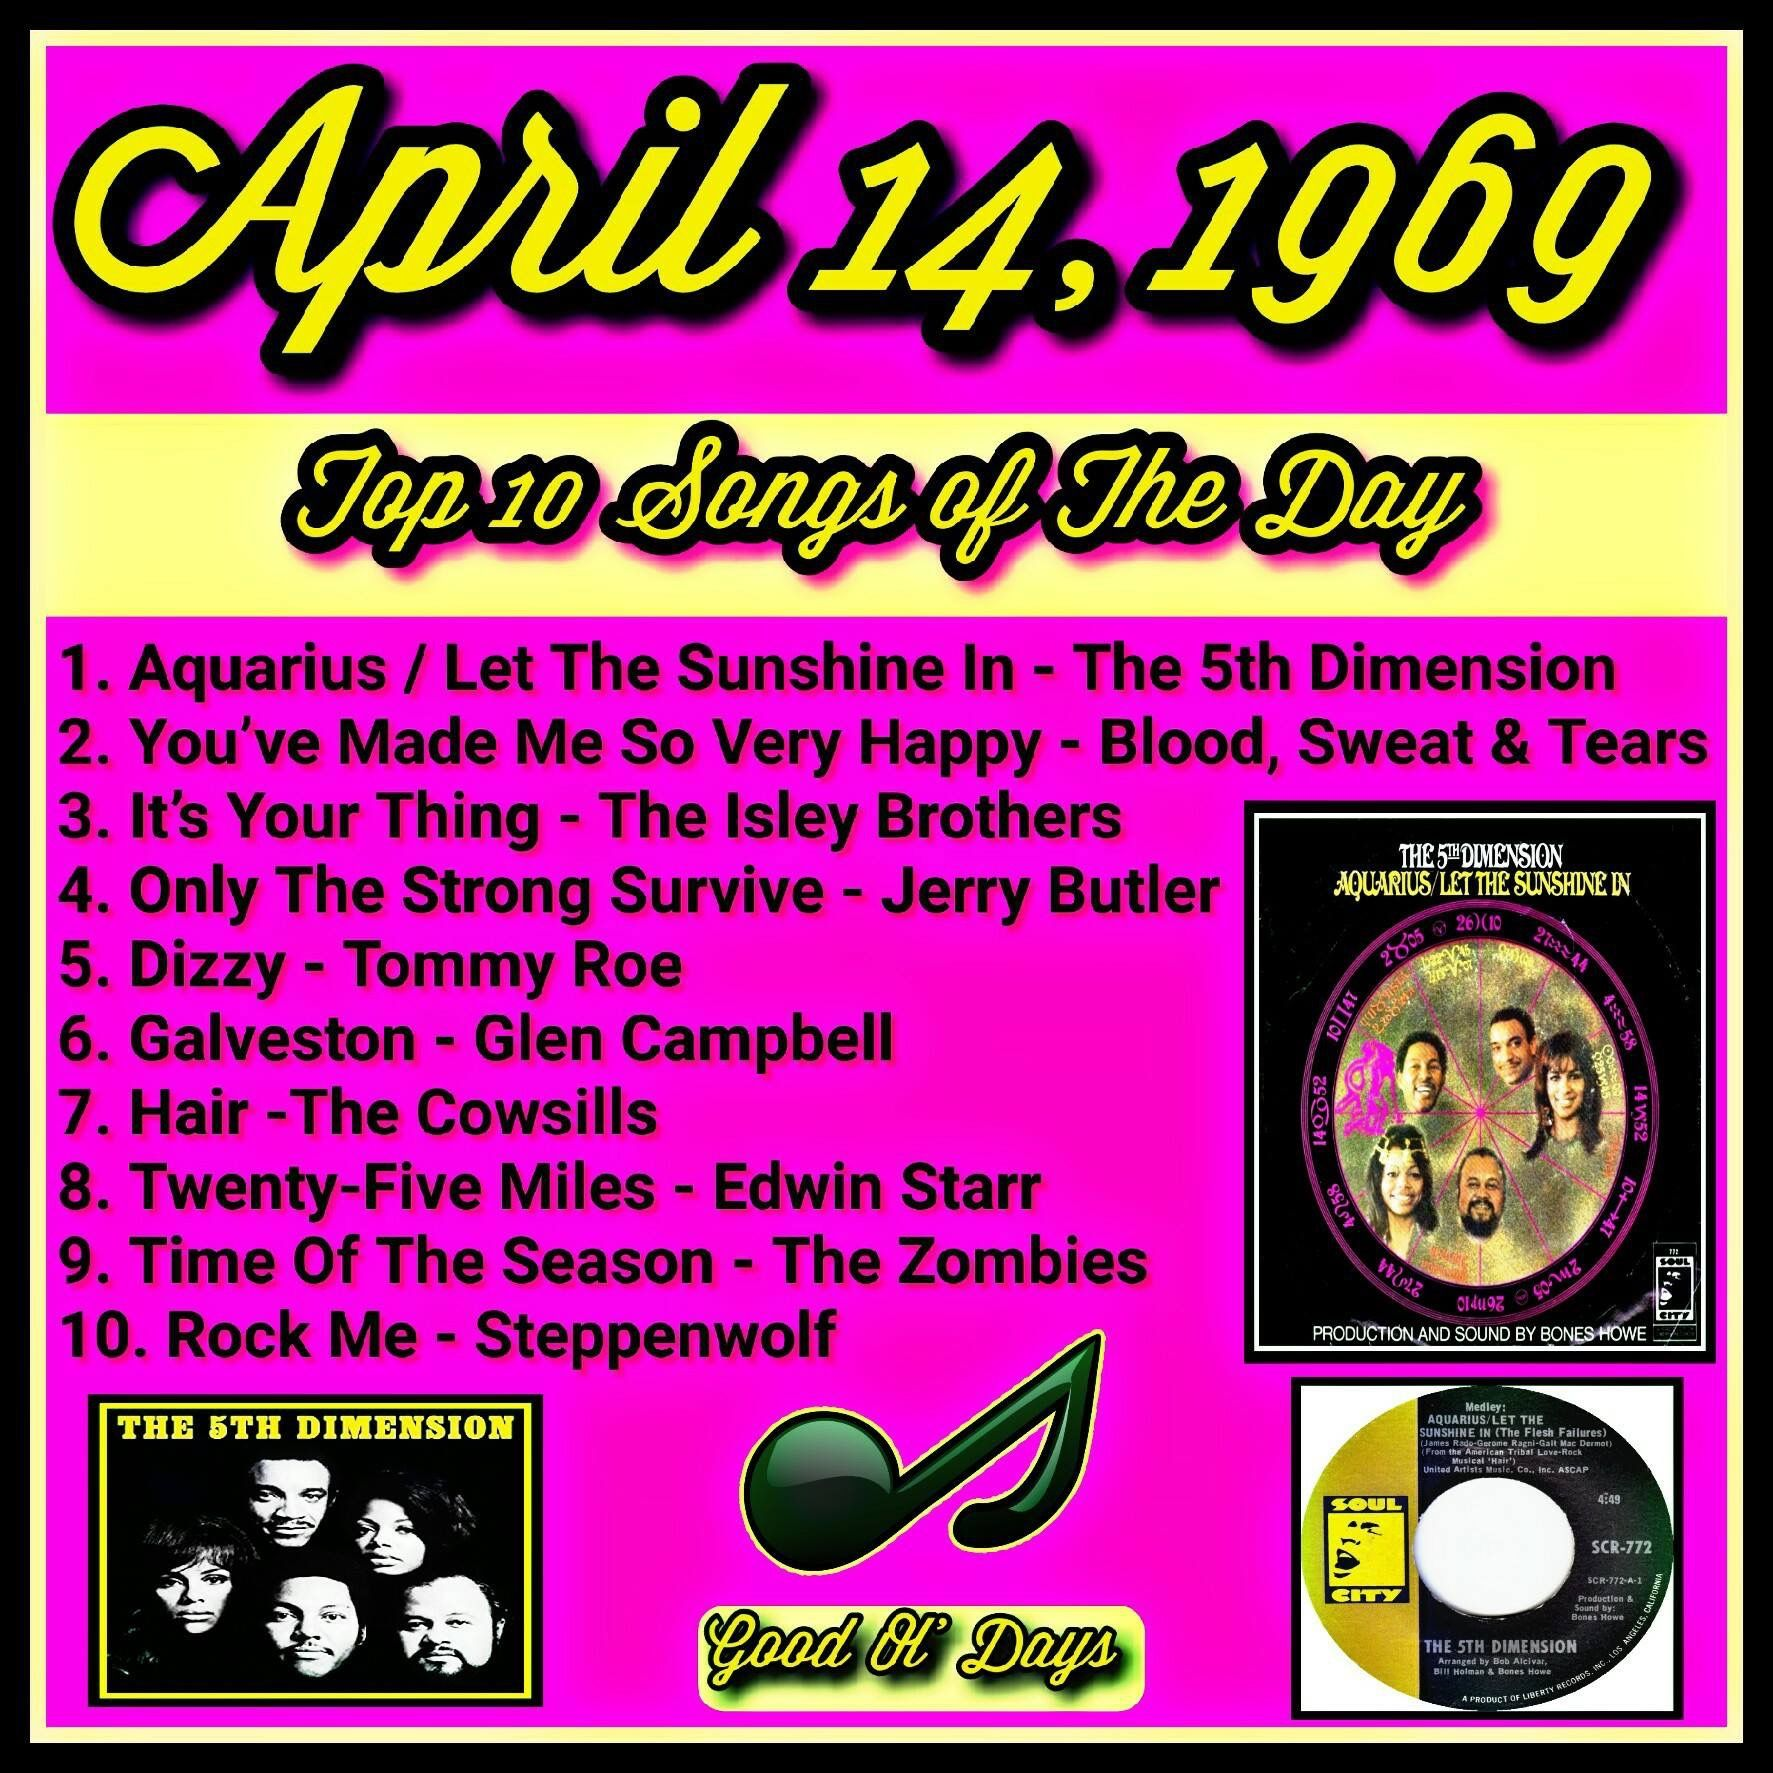 Pin By Deanne Upchurch On Vintage Home Music Charts Rock N Roll